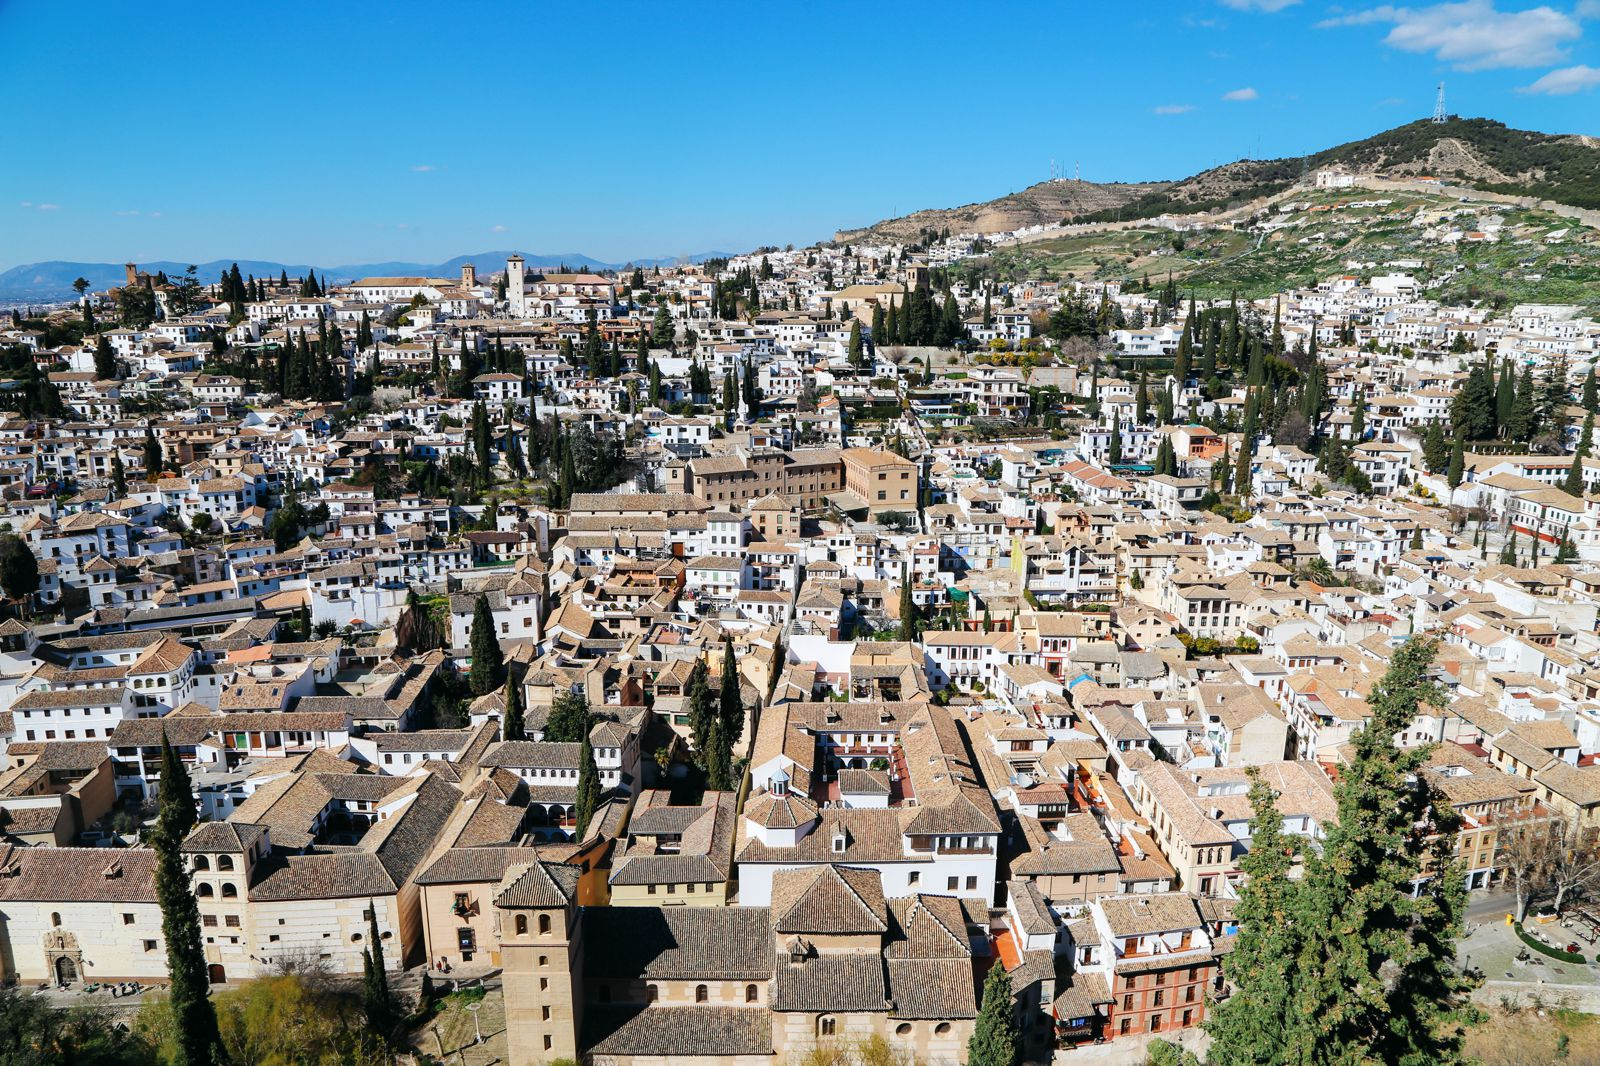 Postcards From Spain - Malaga, Ronda And The Alhambra (17)